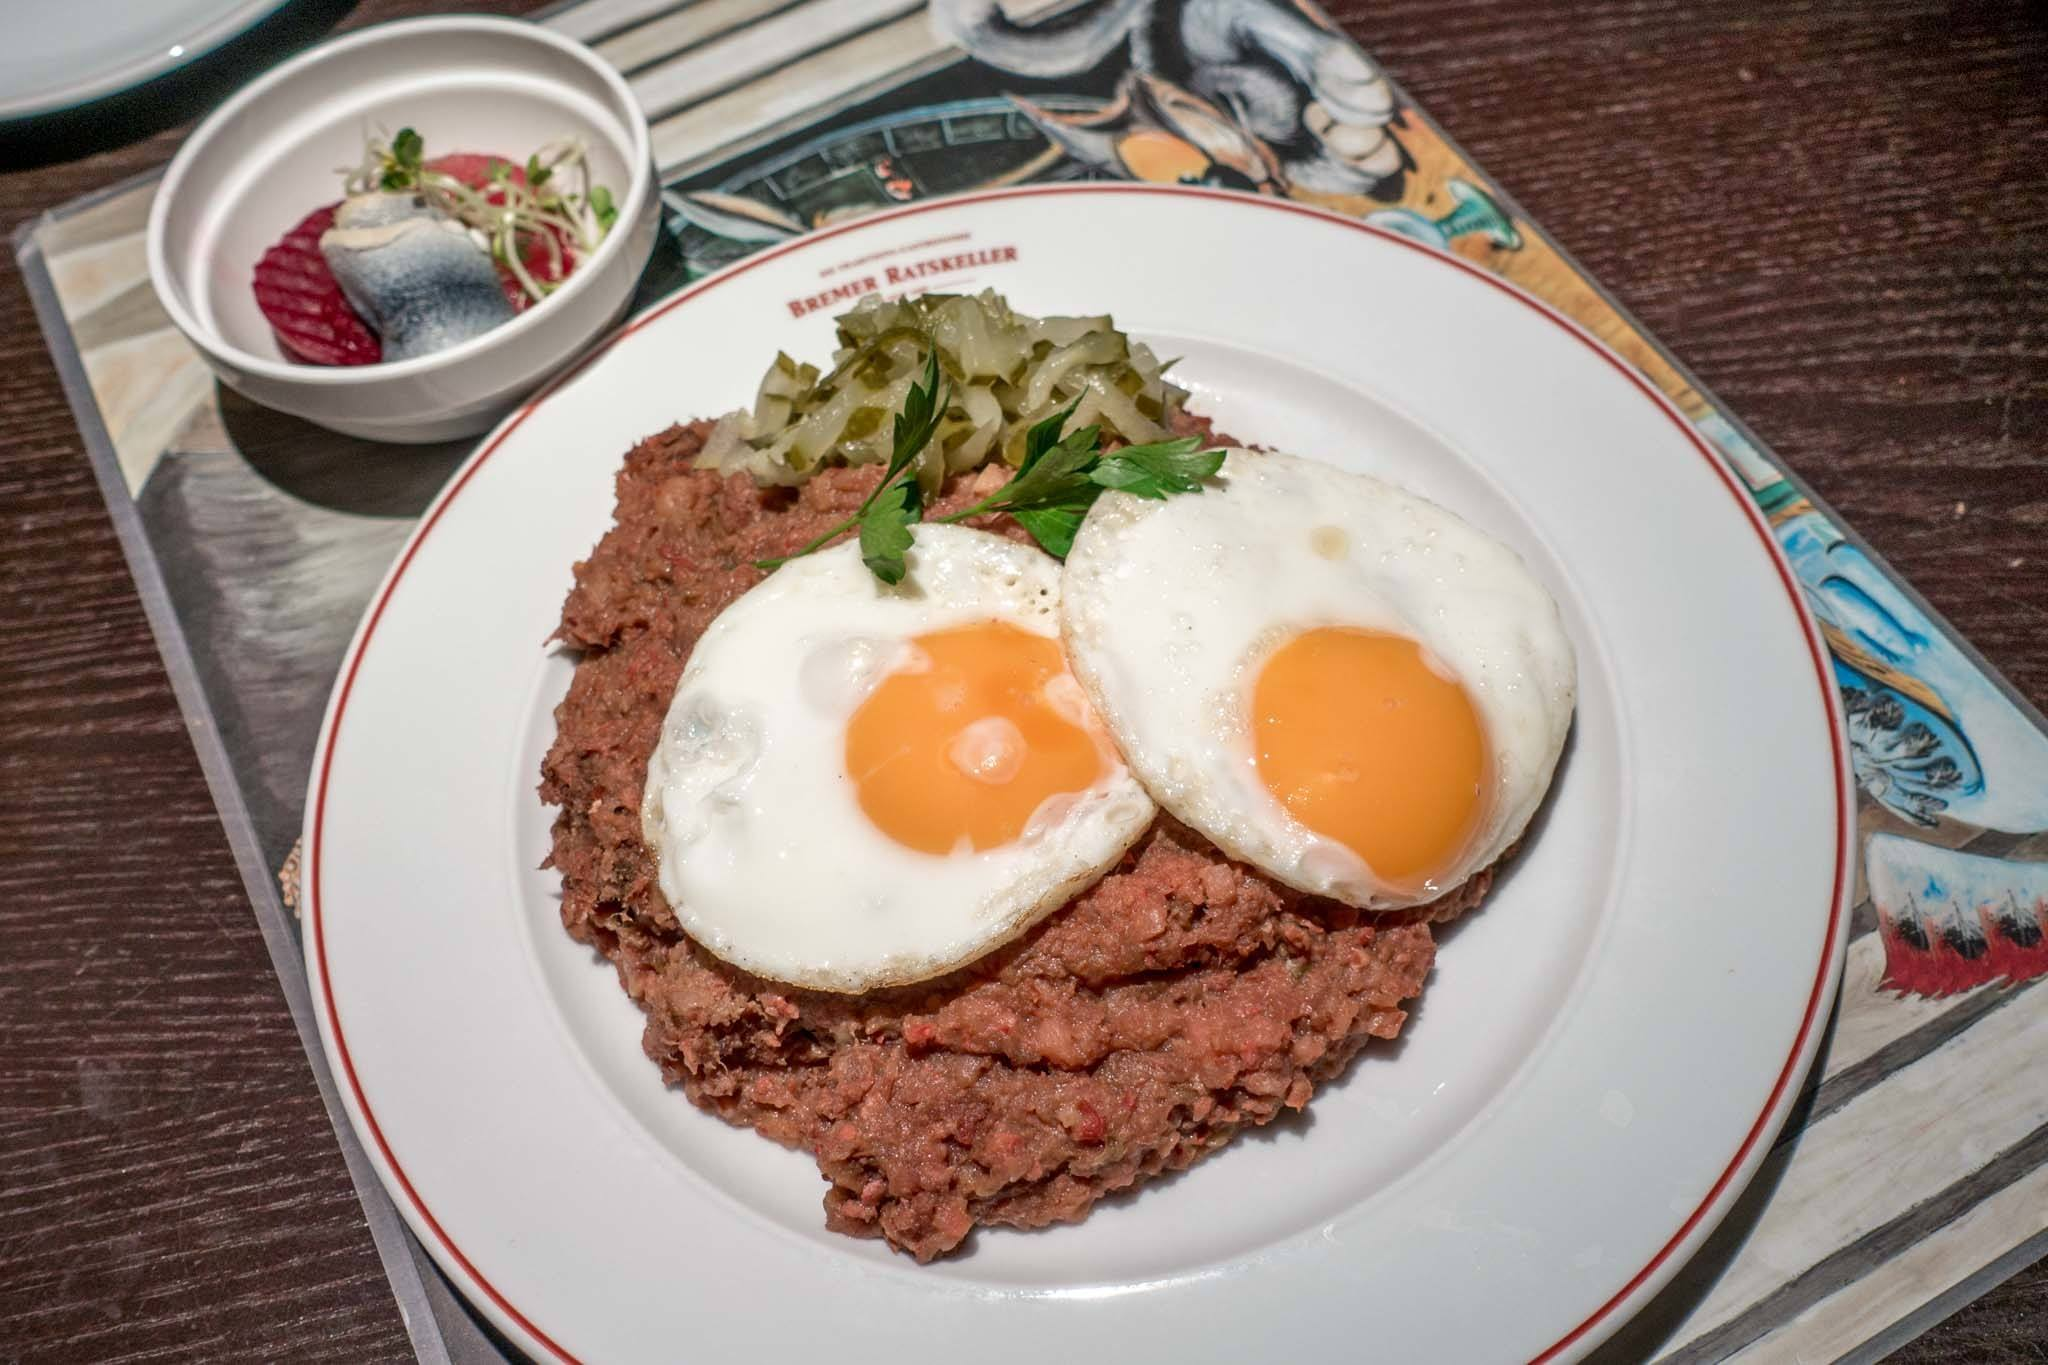 Labskaus, a traditional dish of meat topped with fried eggs